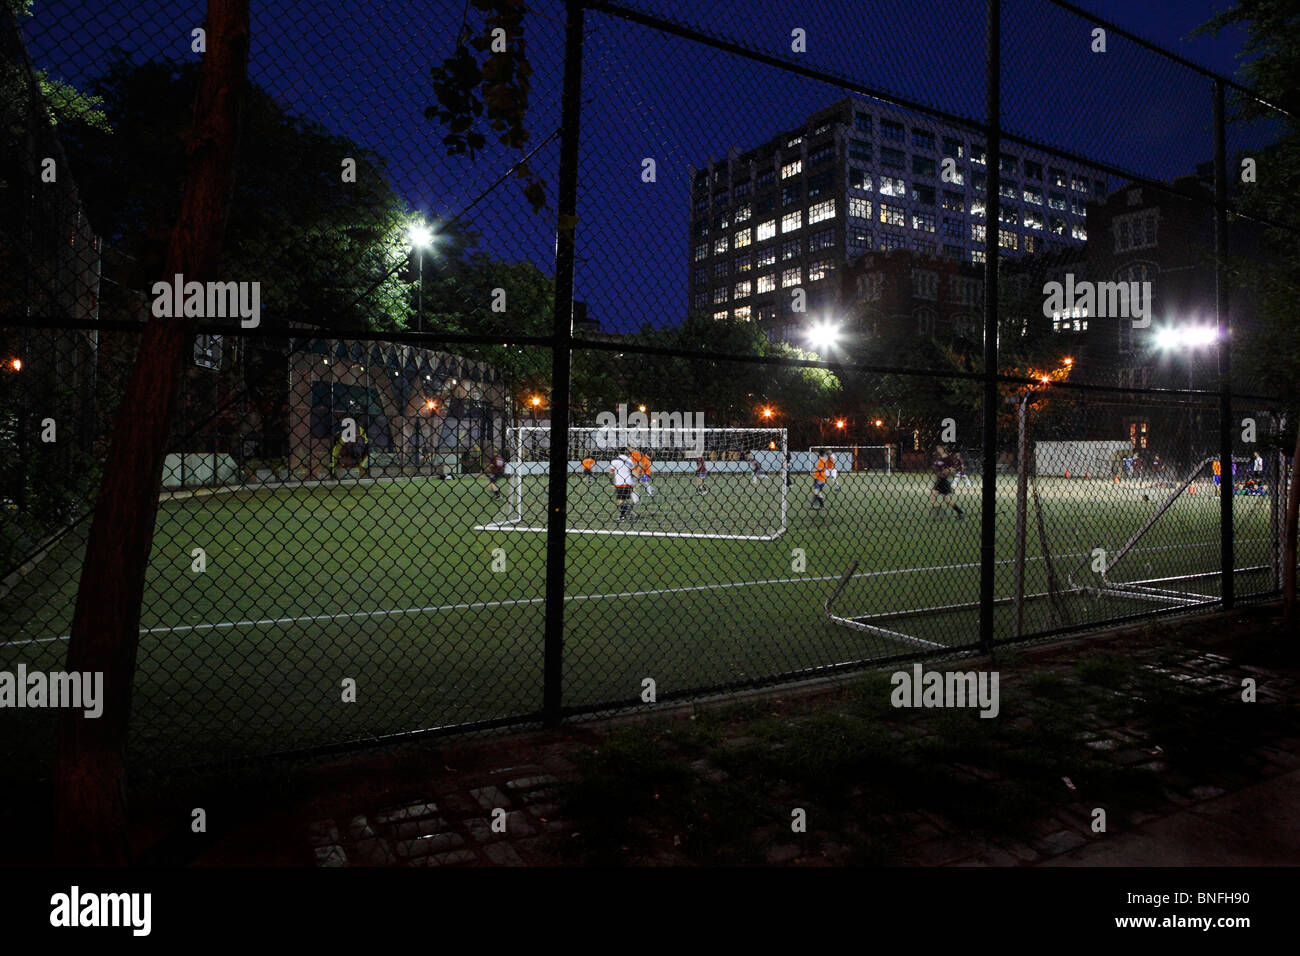 soccer football game in New York City at night - Stock Image